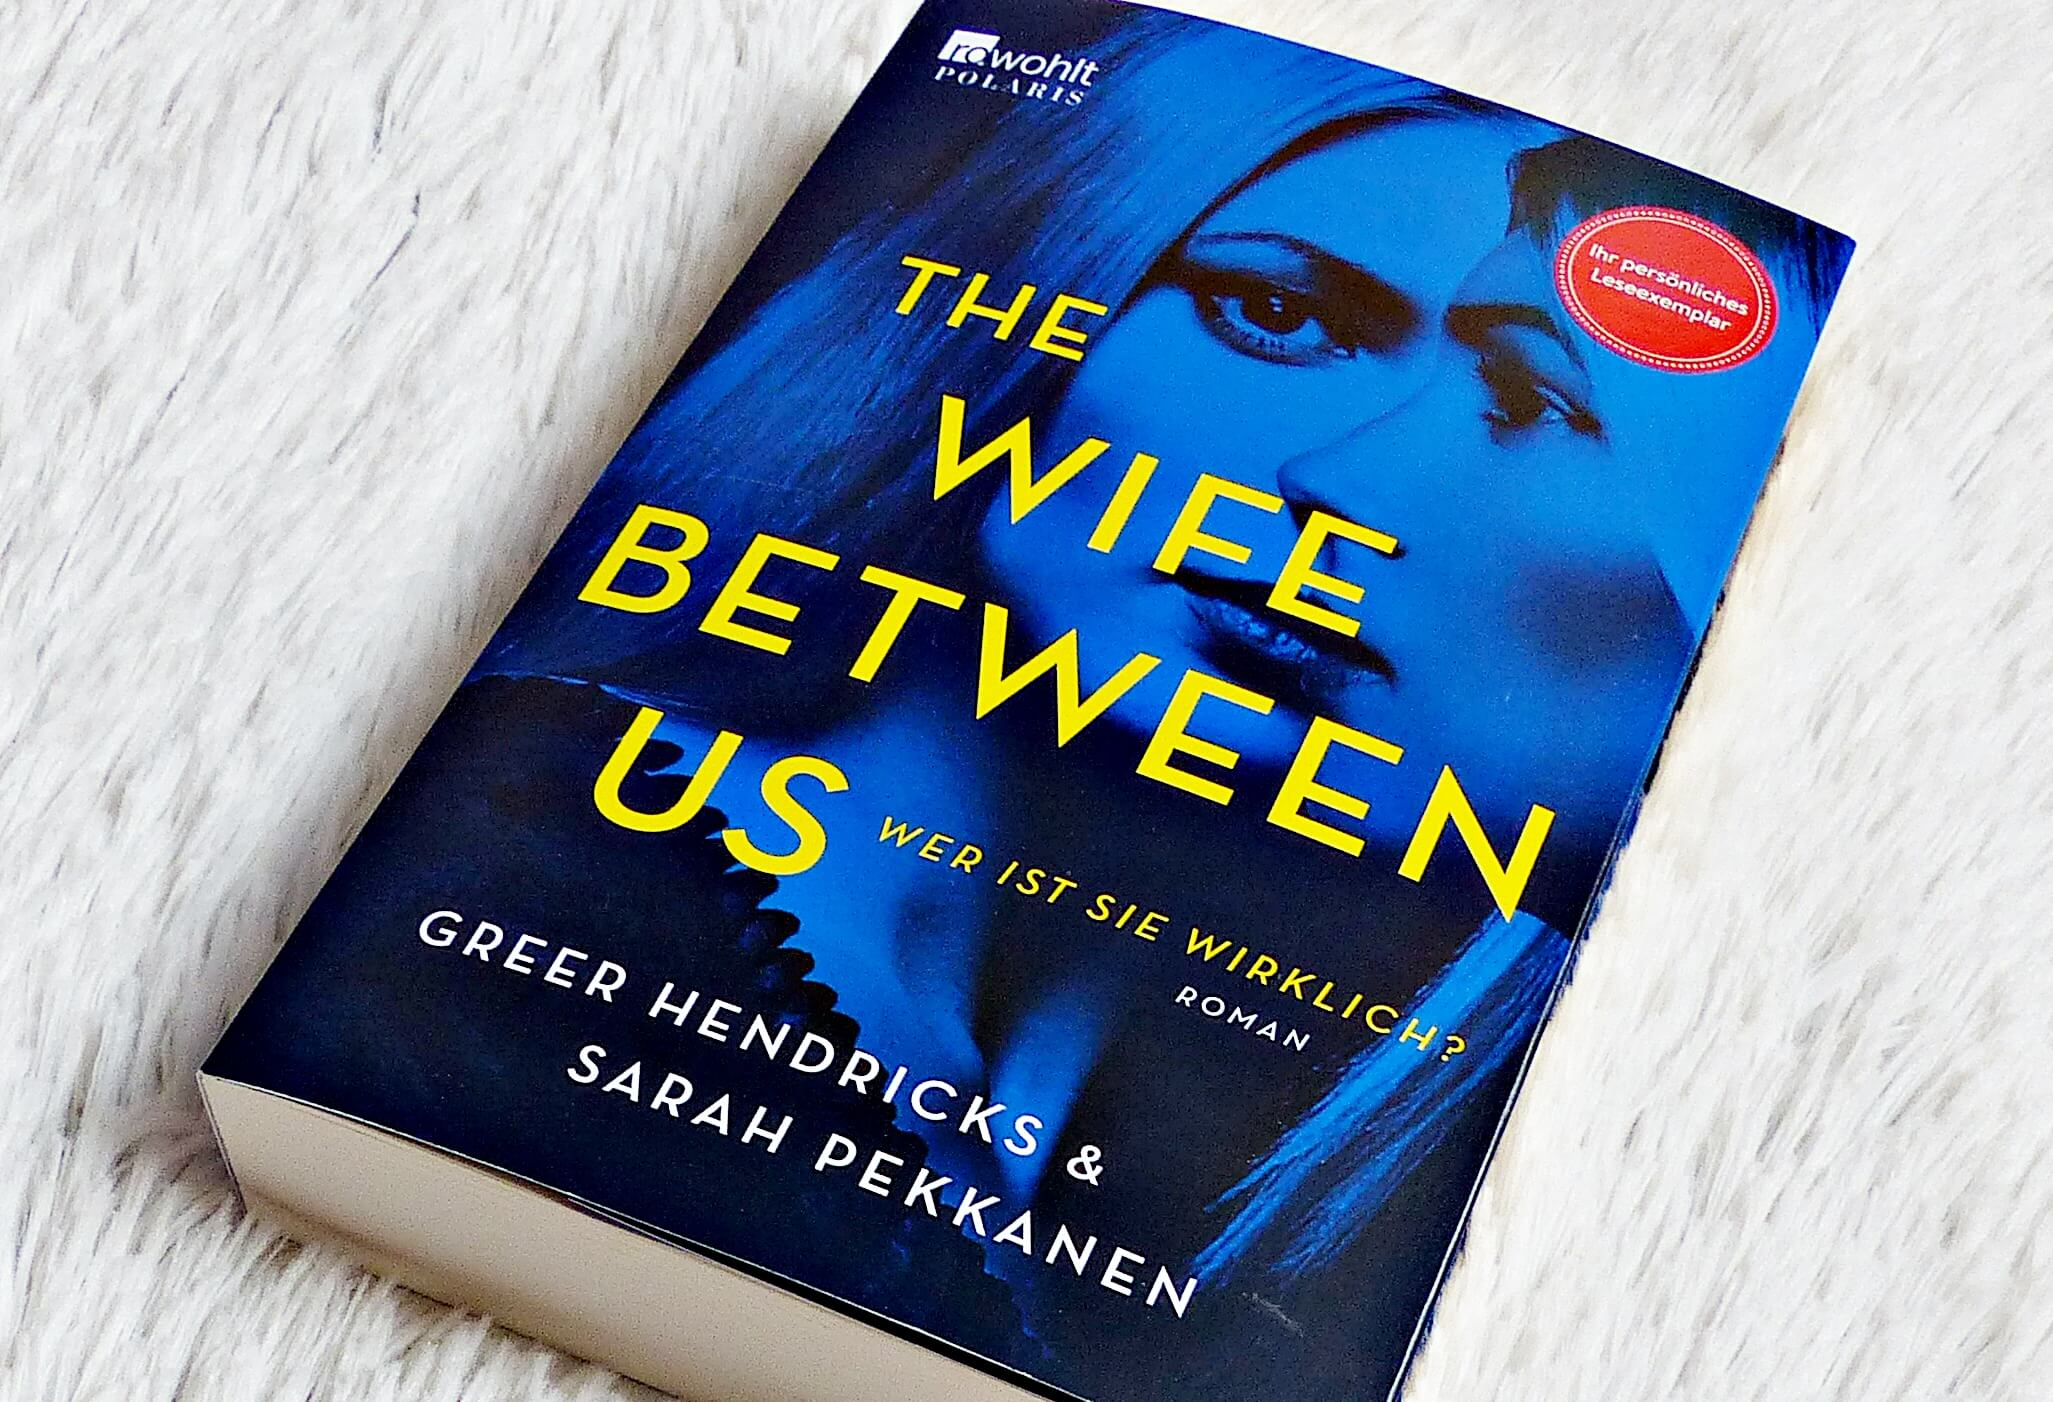 Rezension | Greer Hendricks & Sarah Pekkanen -The Wife between us